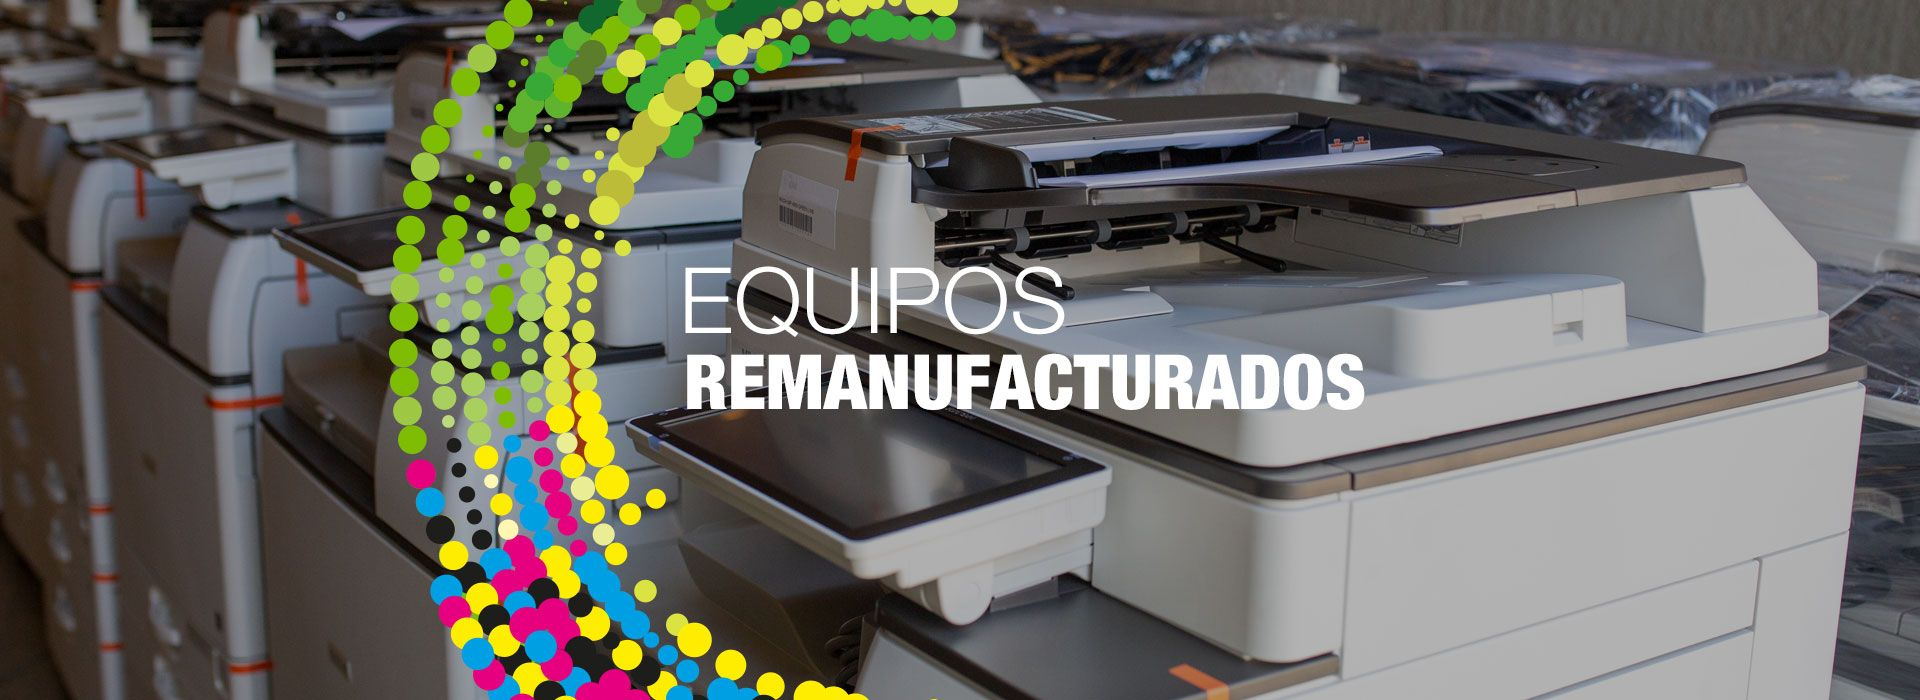 slider-equipos-remanufacturados